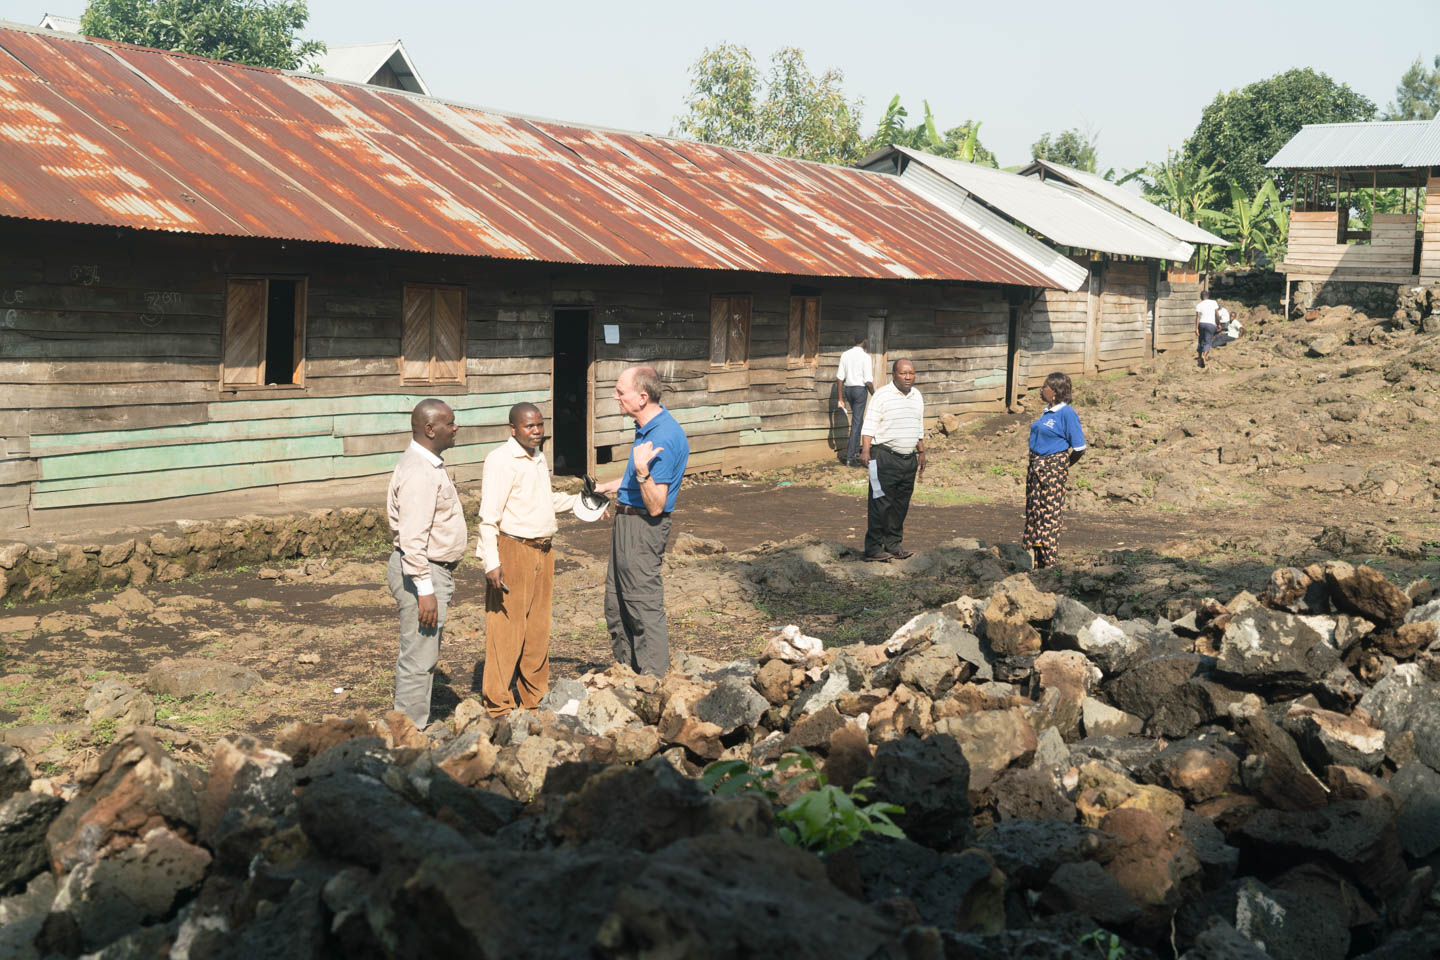 The stone has arrived for a school that JRS is building between two camps of Internally Displaced Persons.